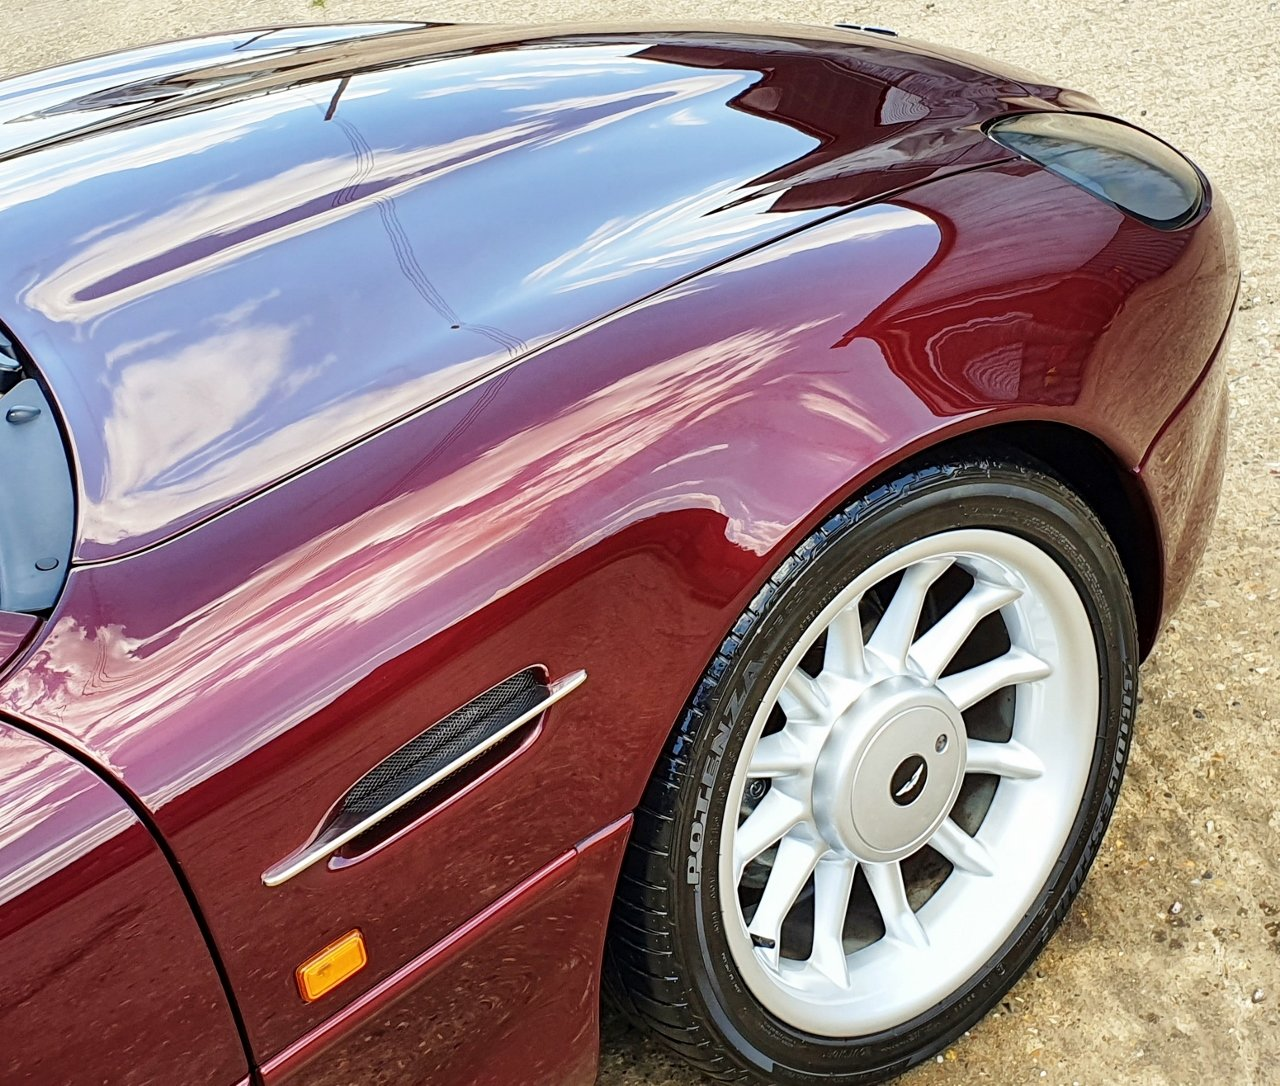 1998 ONLY 25,000 Miles - Pristine DB7 Auto - 3.2 Supercharged SOLD (picture 7 of 10)